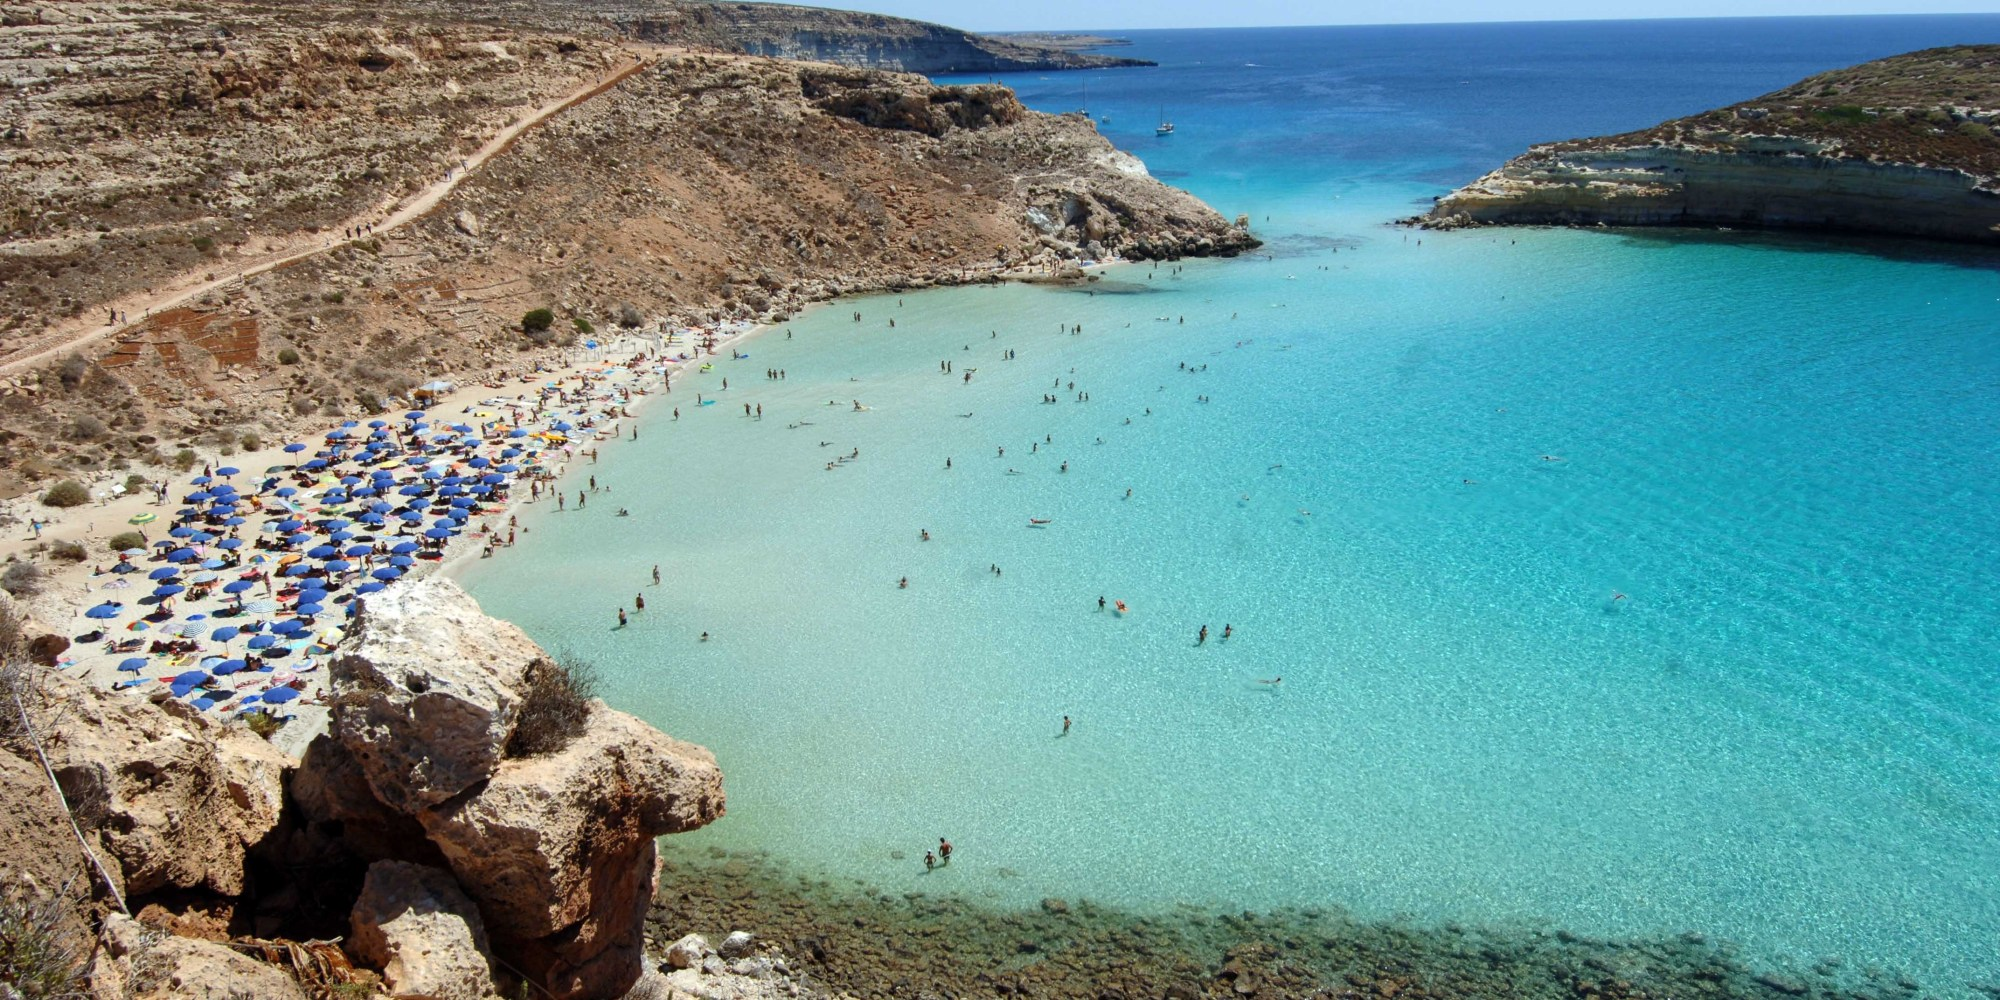 Top Rabbit Beach May Just Be The Best Beach In The World | HuffPost ZV15